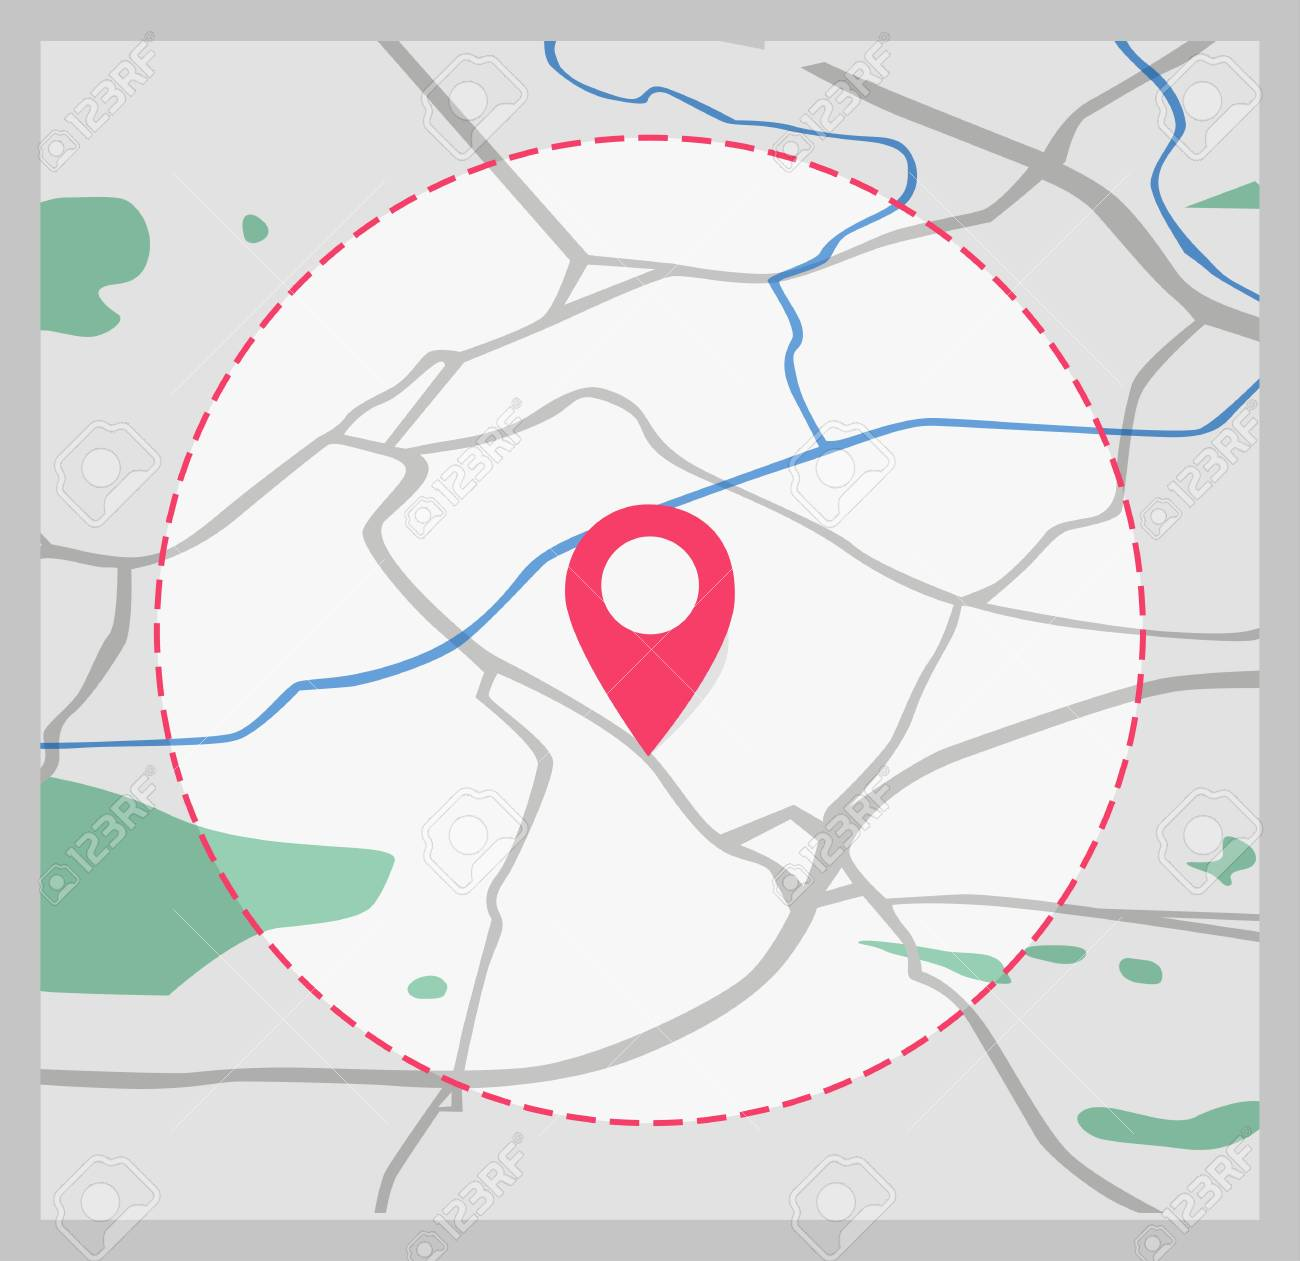 Vector Icon. Map Of The City. Point On The Map. Pin And The Distance on